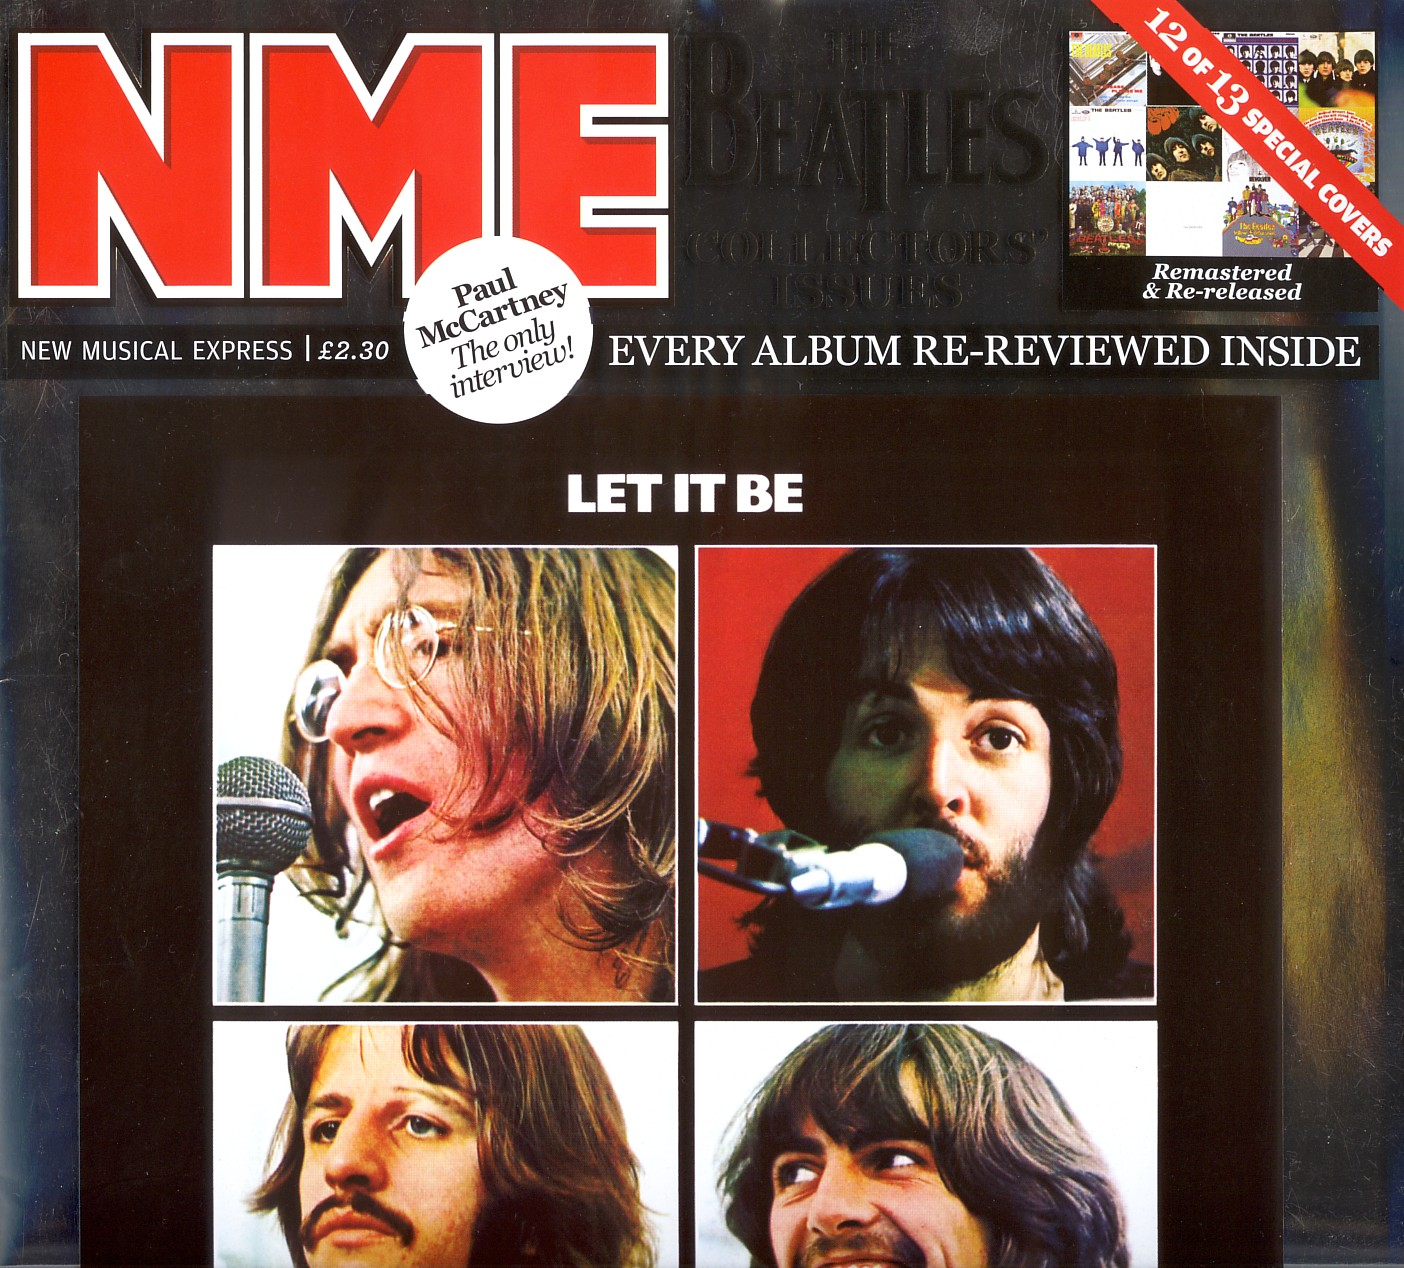 Cover number 12 of 13 special NME covers celebrating 09.09.09